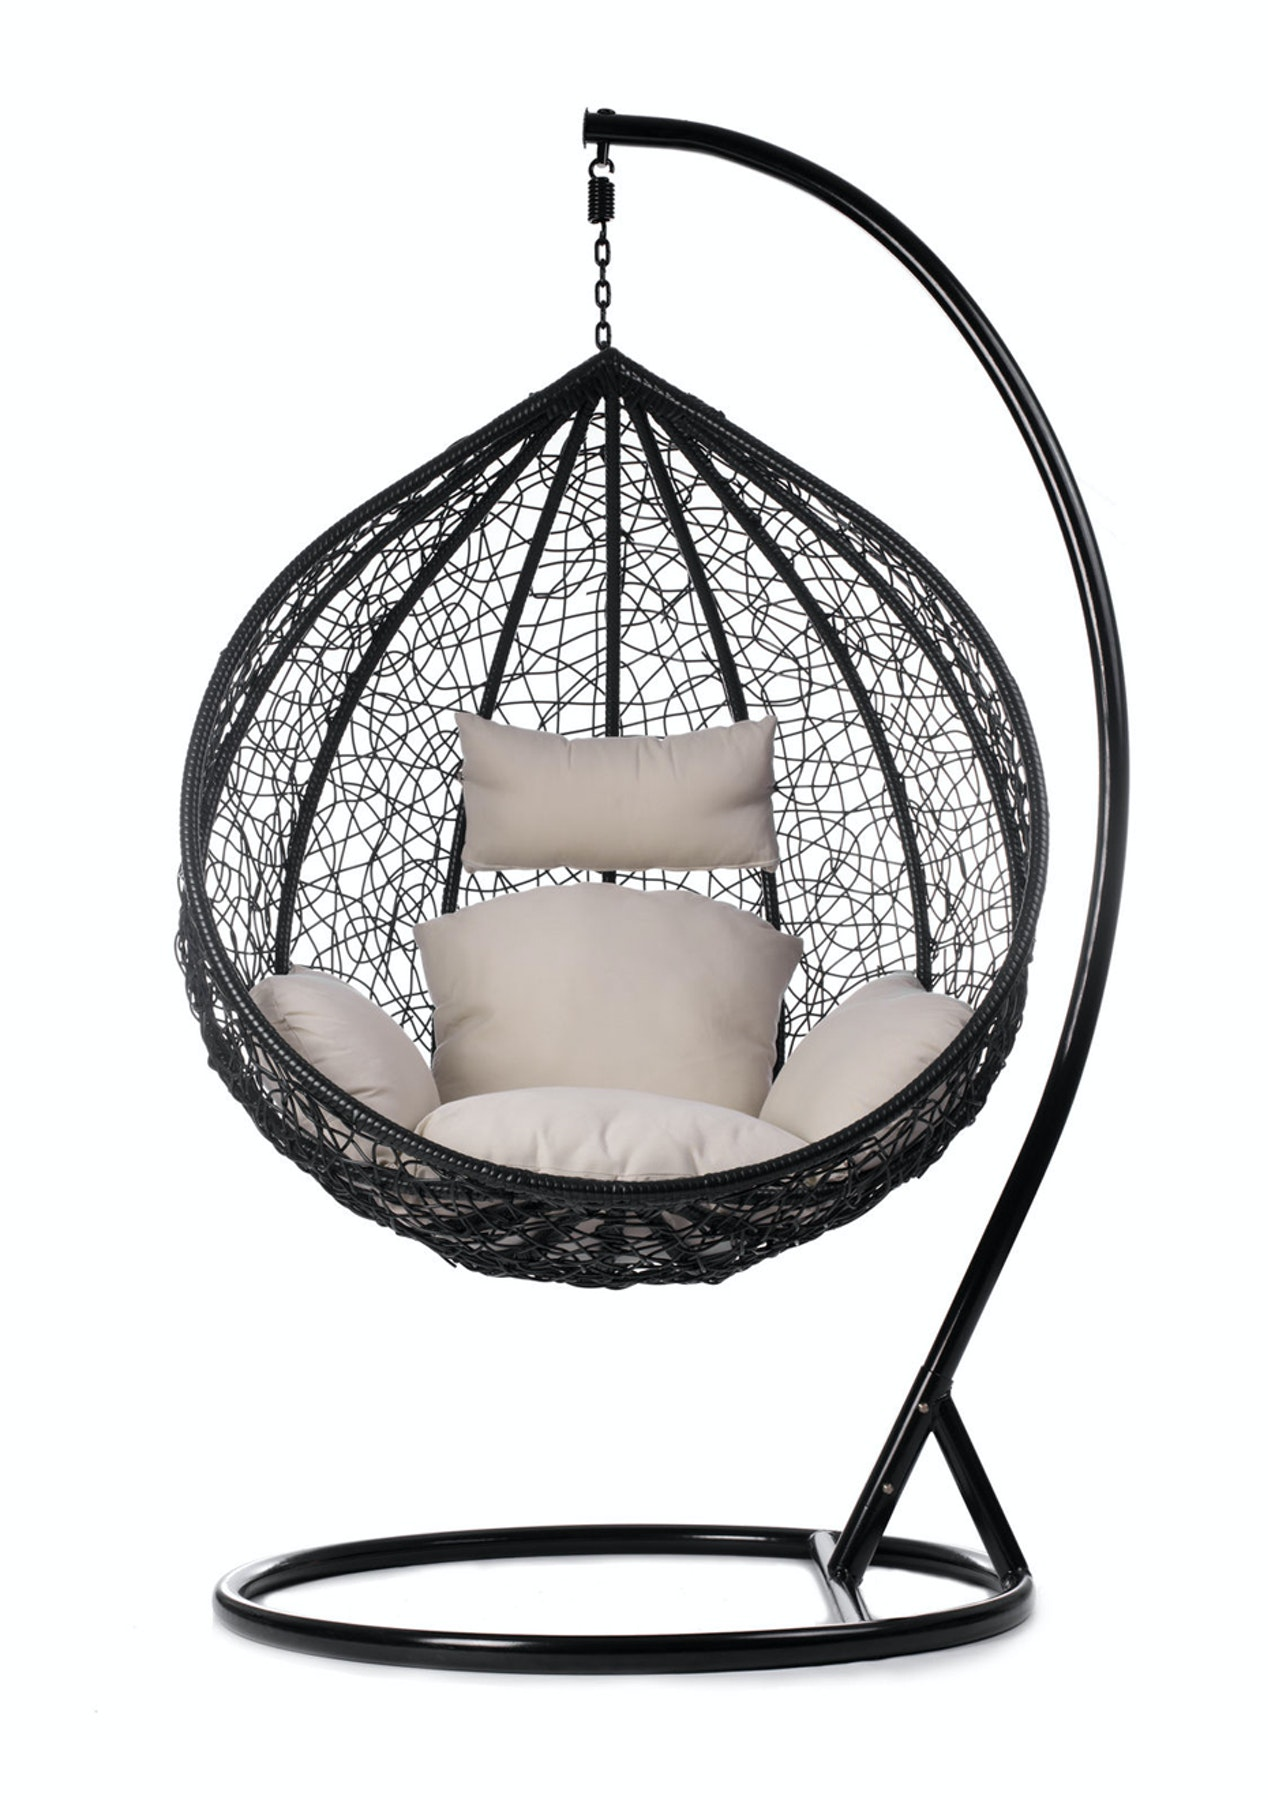 Phenomenal Hanging Egg Chair X Large Caraccident5 Cool Chair Designs And Ideas Caraccident5Info